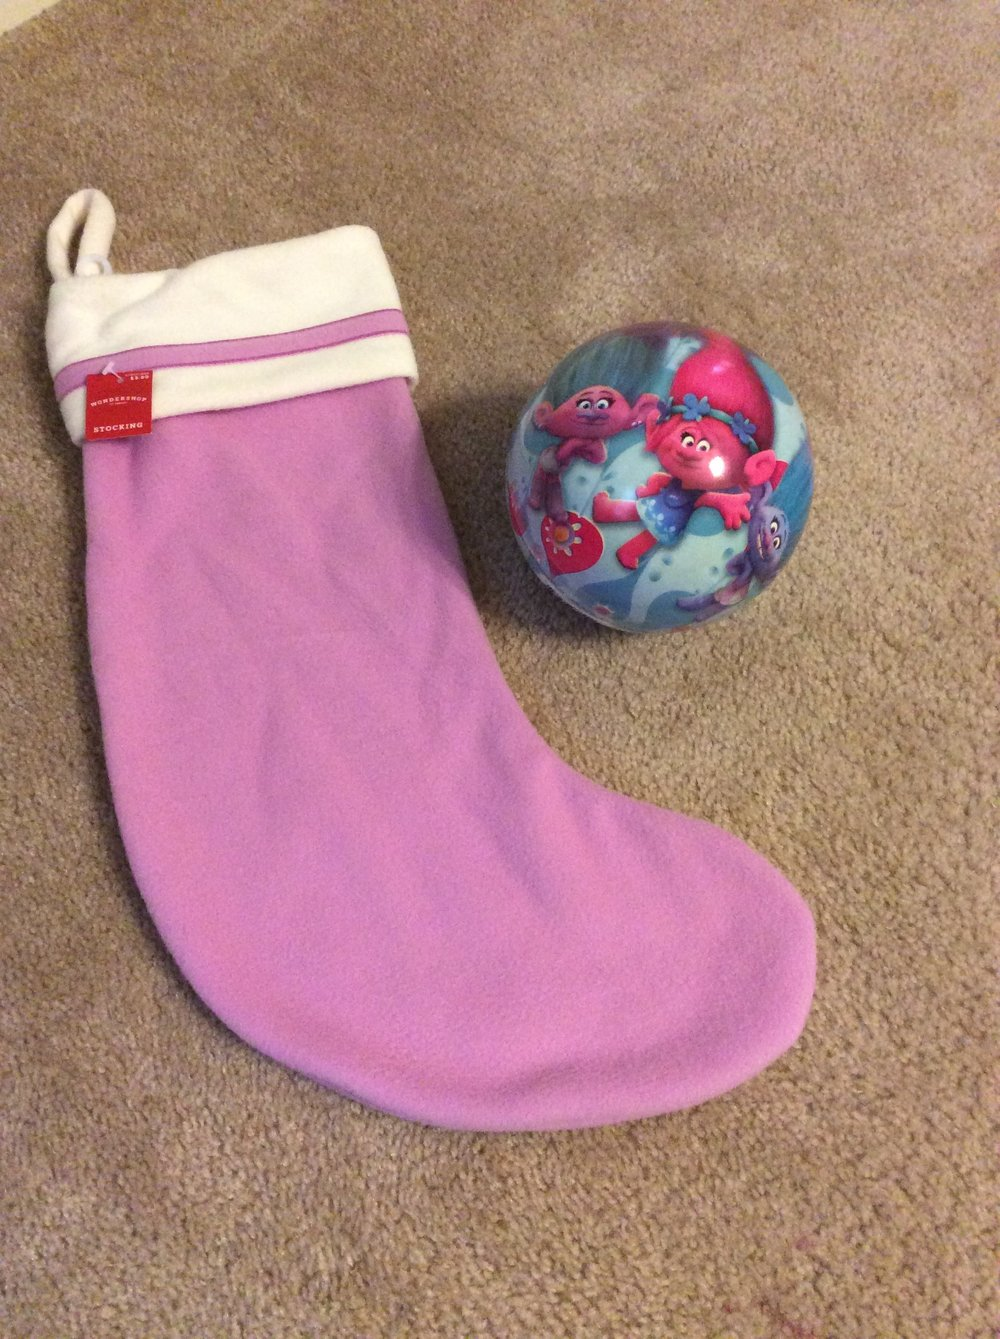 Stocking (Target $3.00) & Ball (Walmart $2.88)